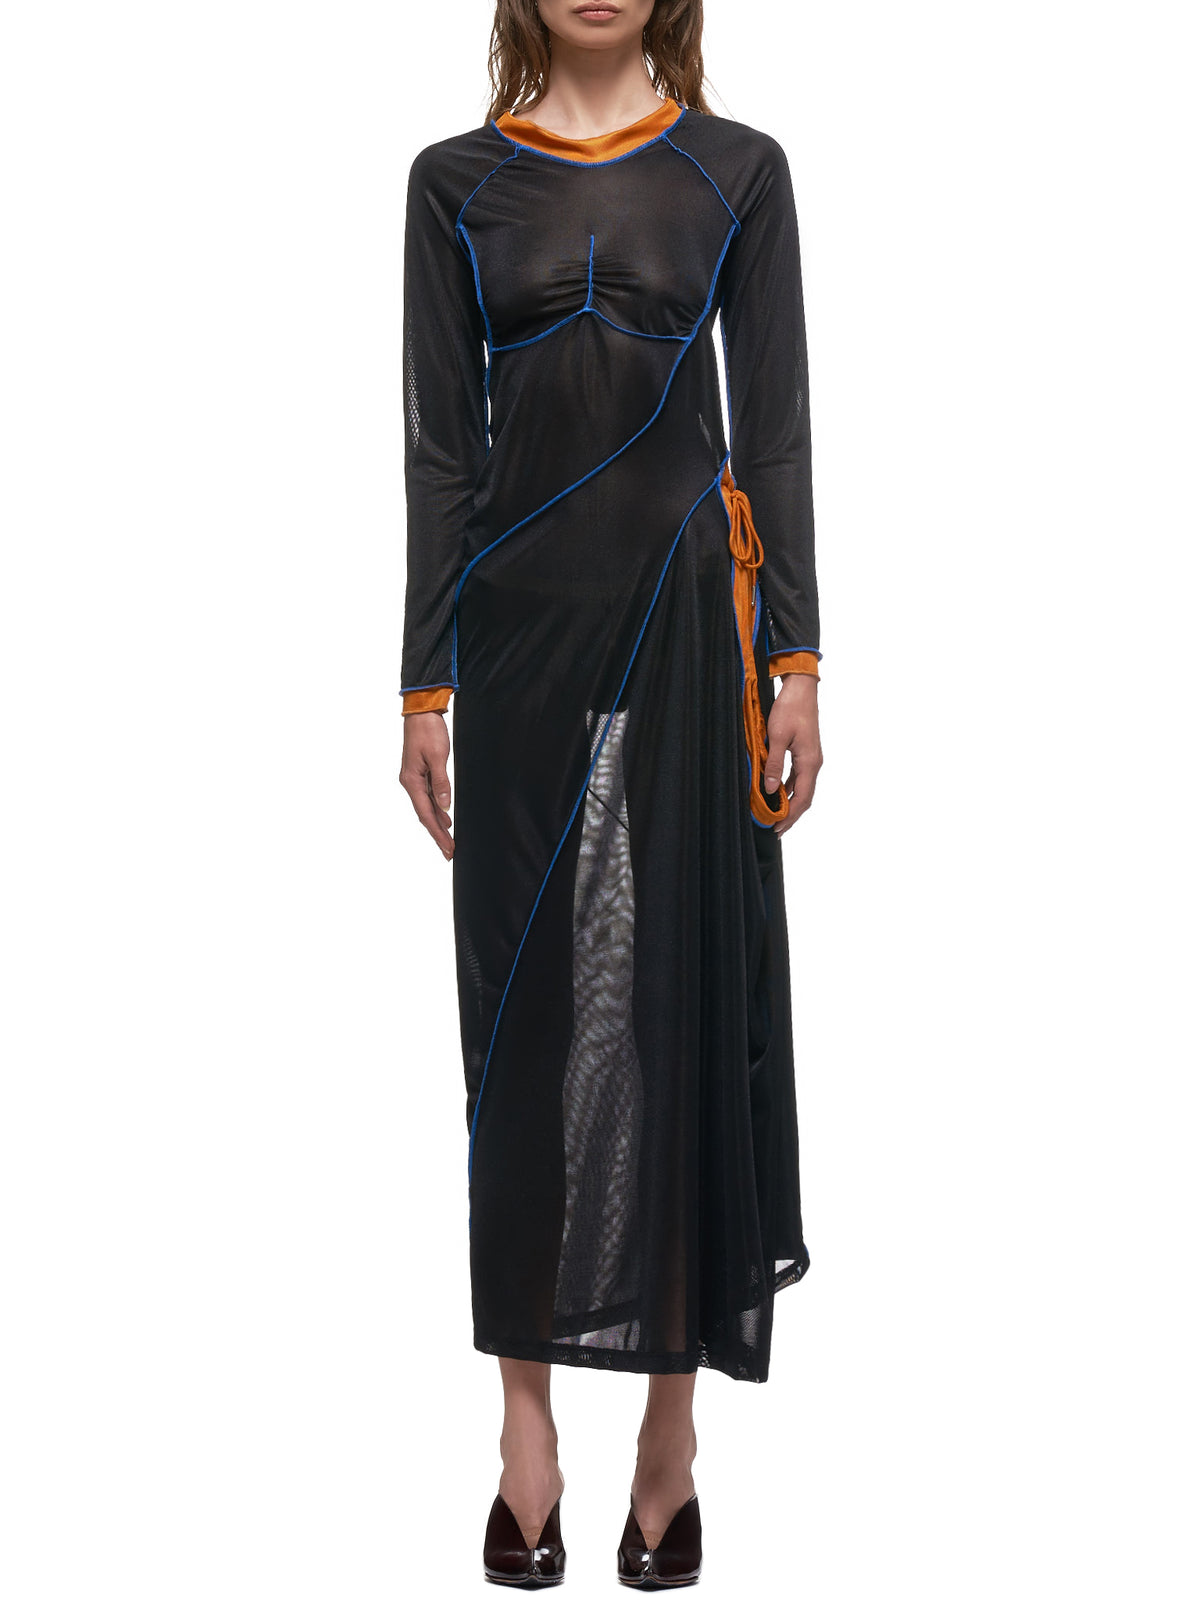 Fitted Full-Length Multi-Tie Dress (WTSDRESS36-S18-F176-BLACK-MULT)